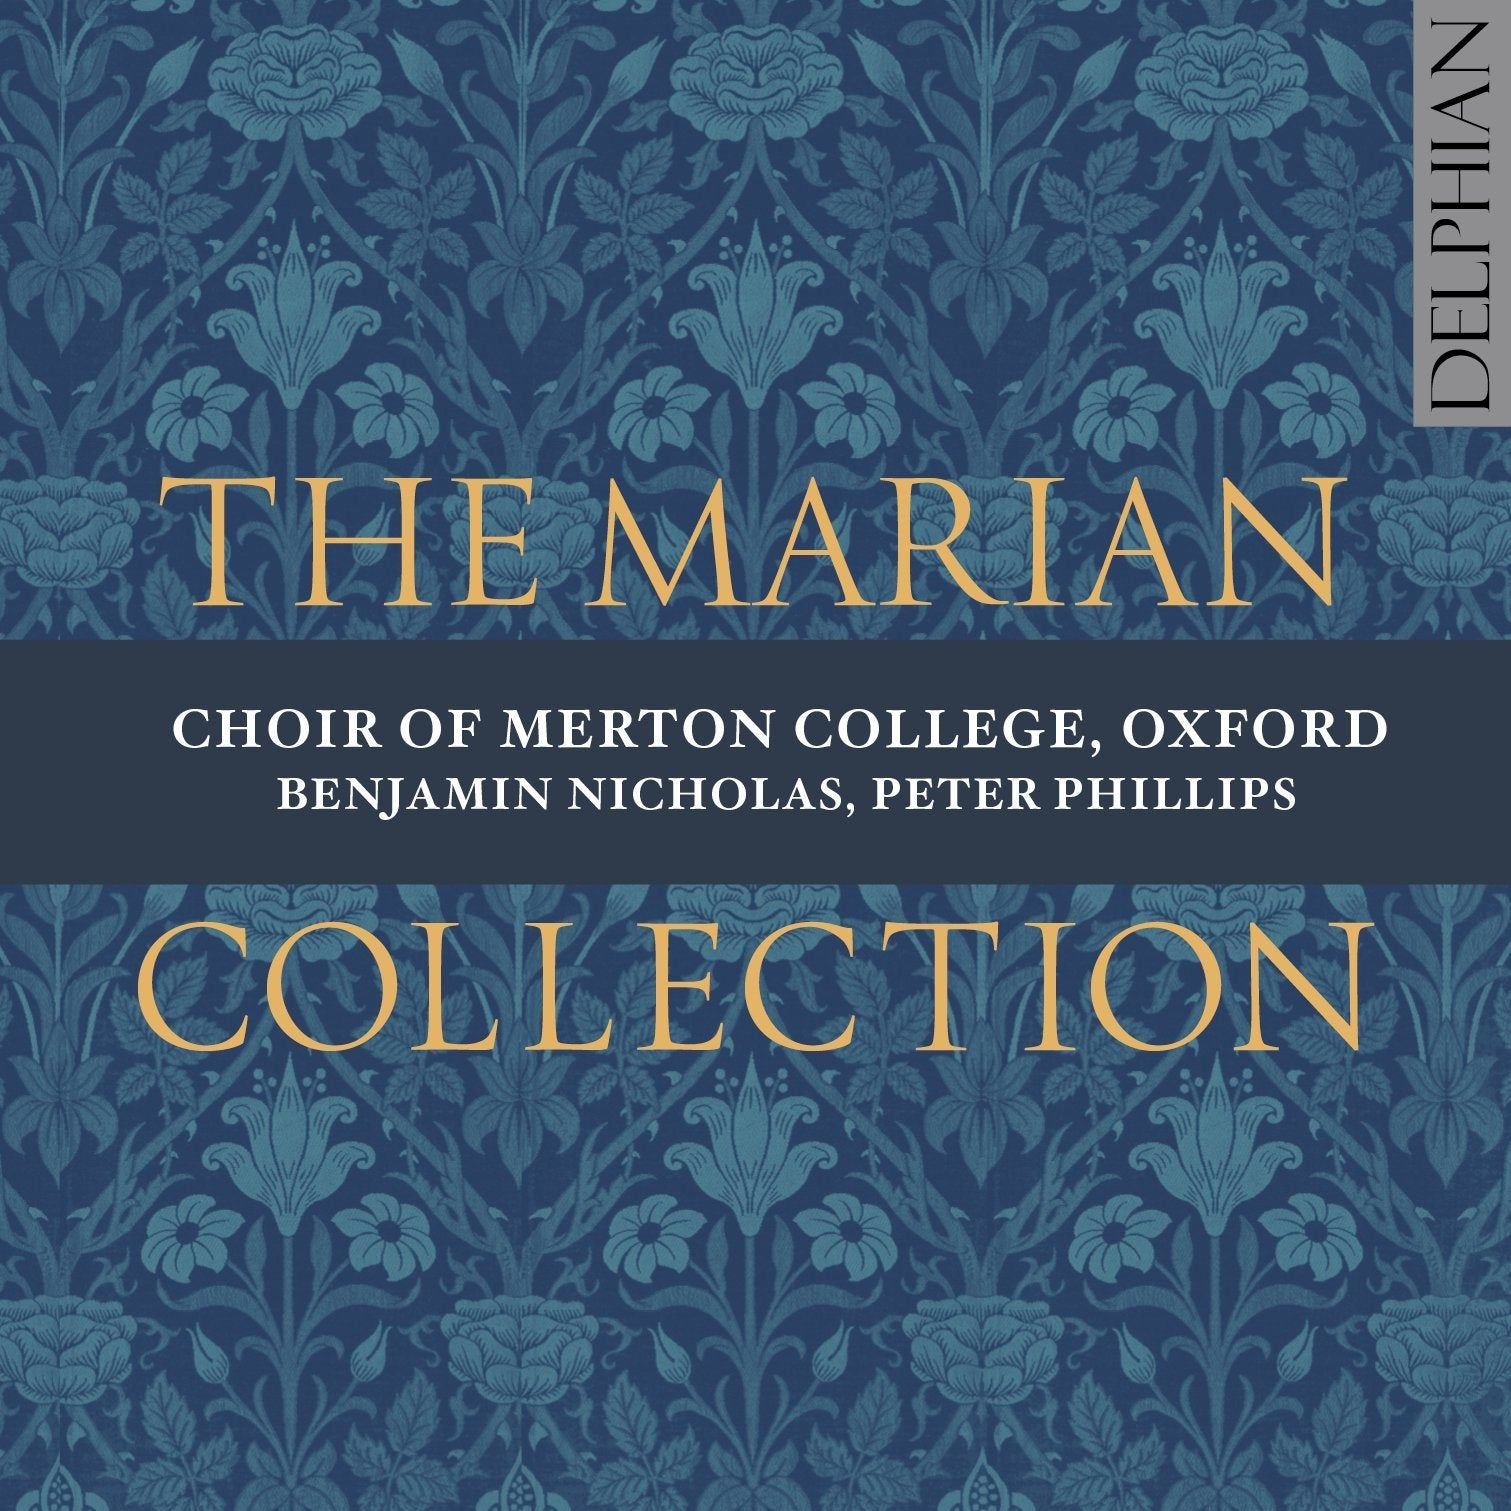 The Marian Collection CD Delphian Records